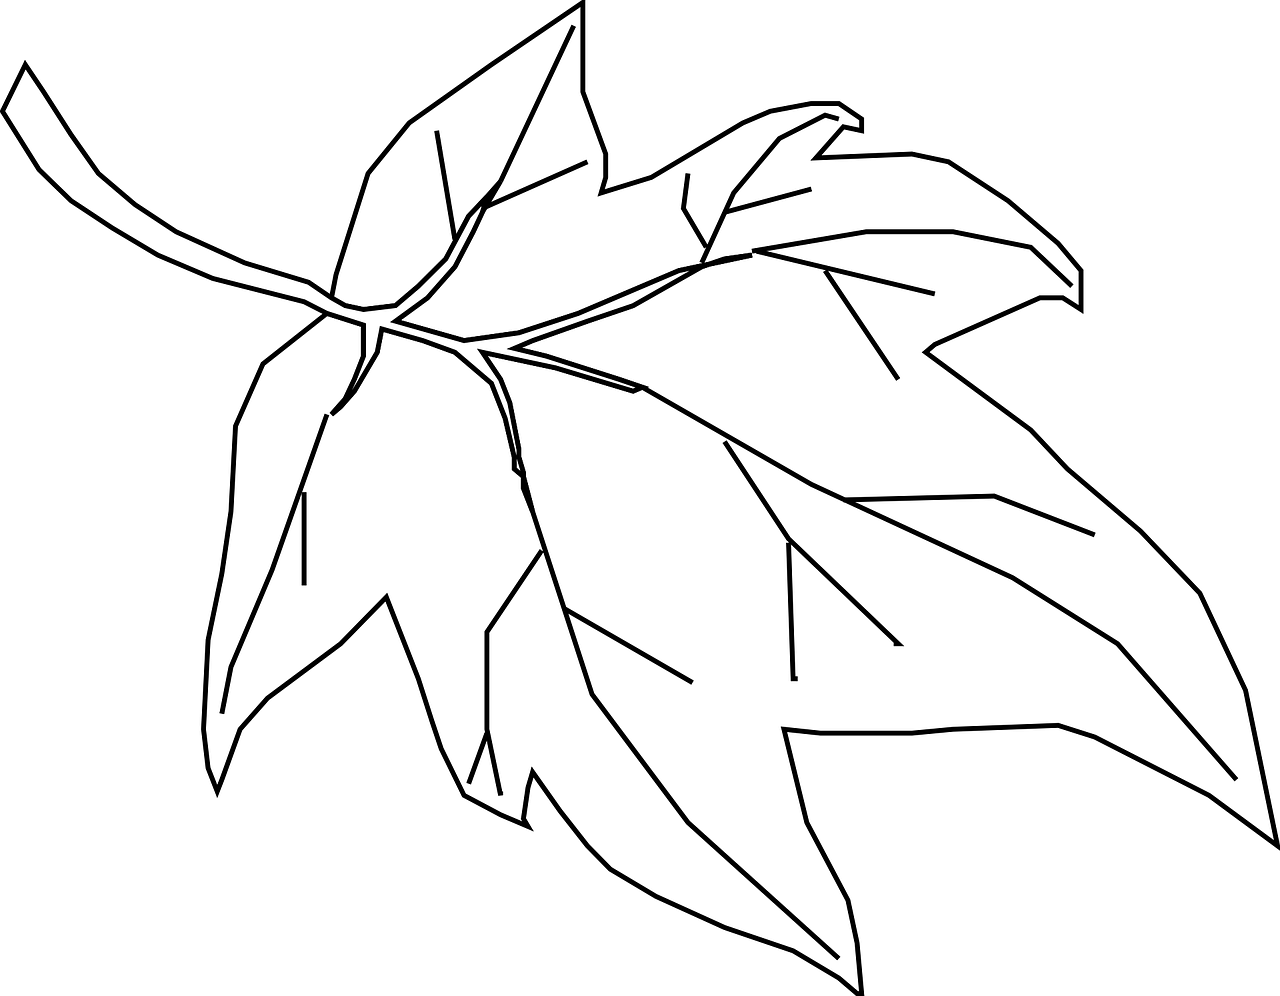 Free printable leaf coloring pages for kids: 11 pics